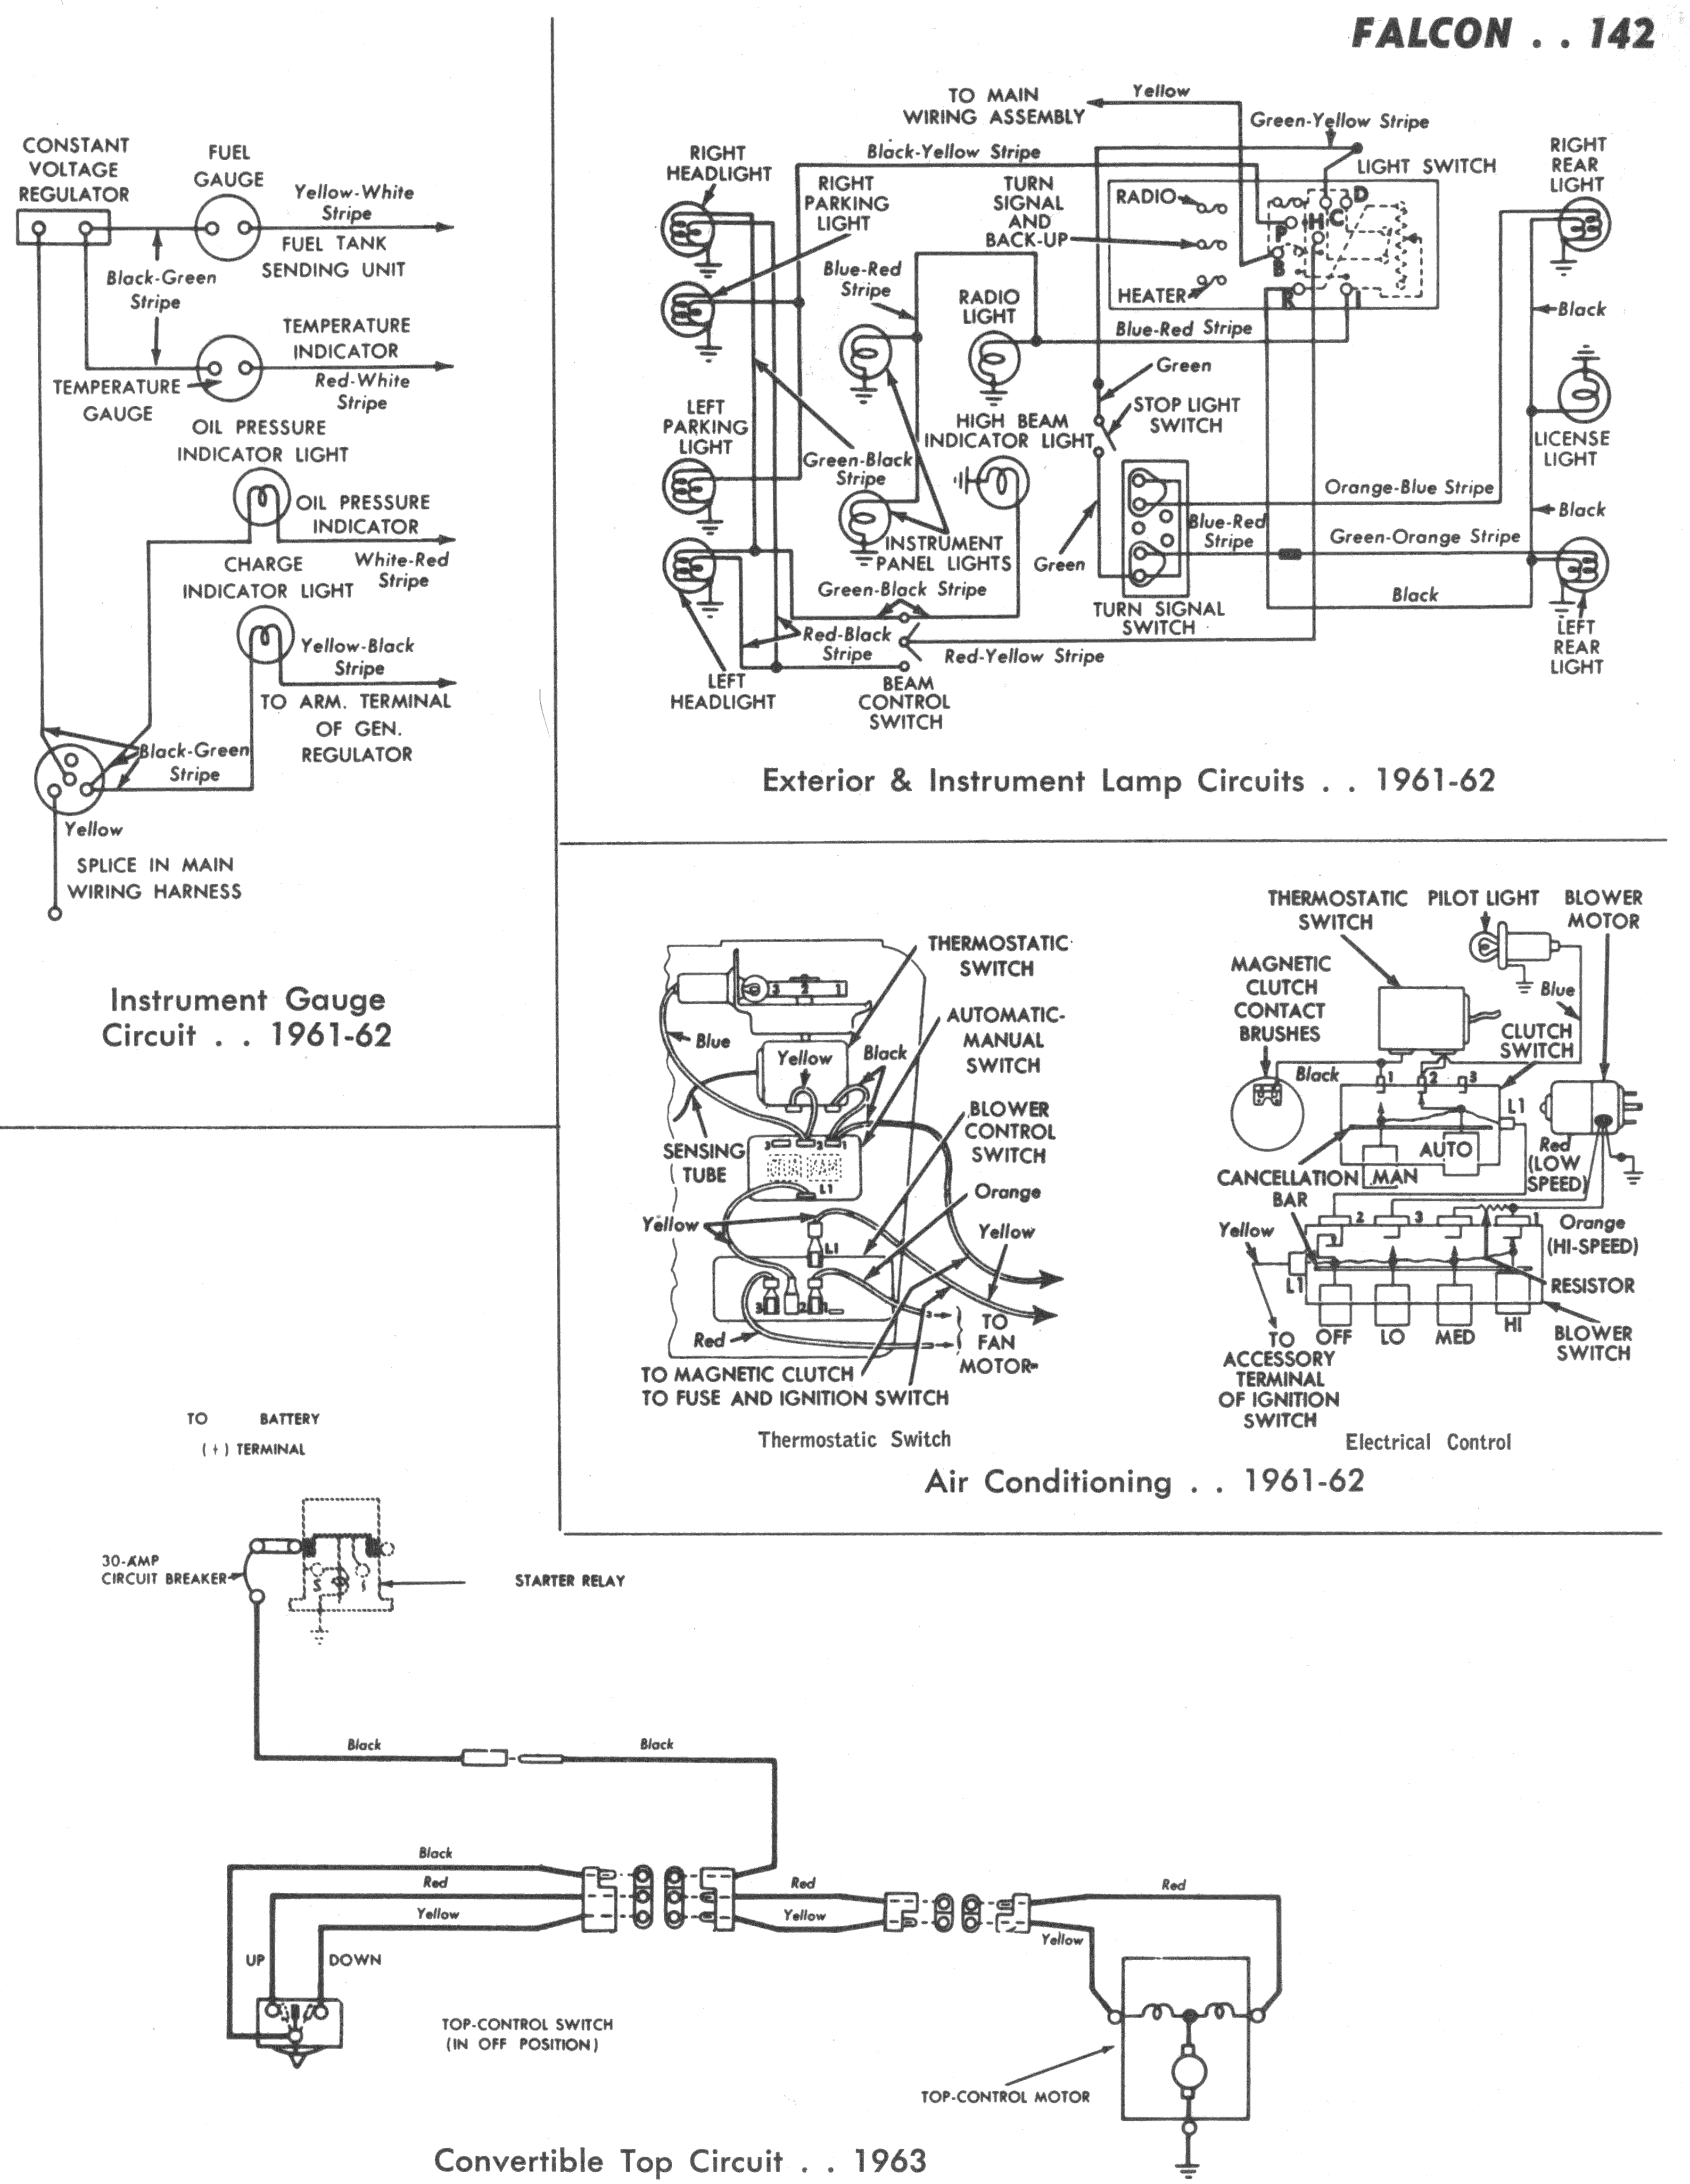 1964 Ford Falcon Wiring Diagram List Of Schematic Circuit 2002 Kia Optima Diagrams Rh Falconfaq Dyndns Org